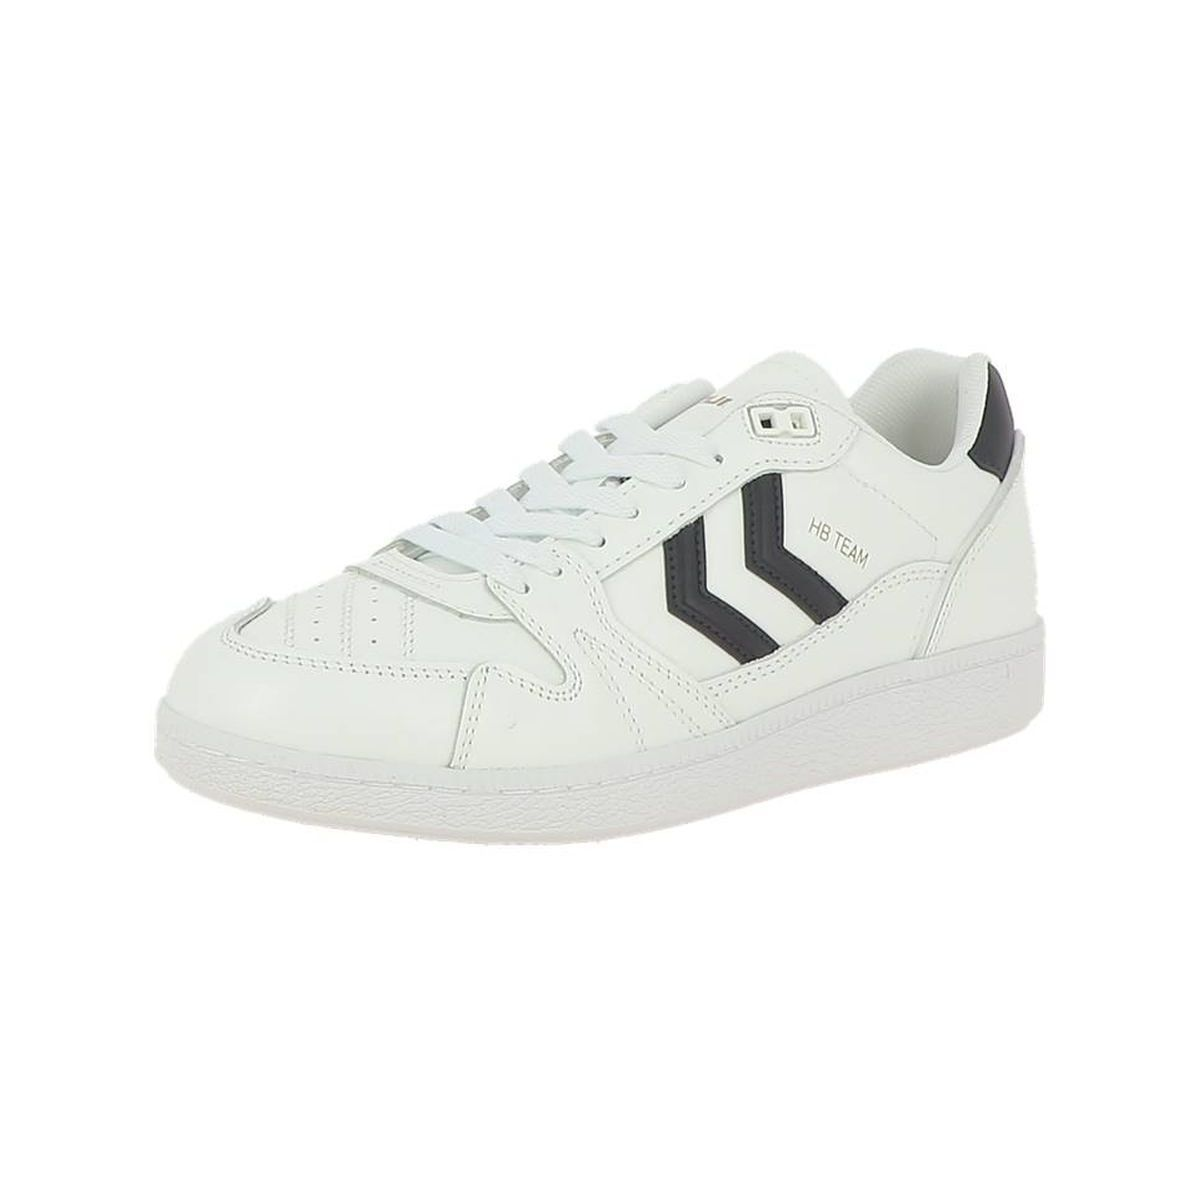 Hummel homme hb team leather blanc1284101_2